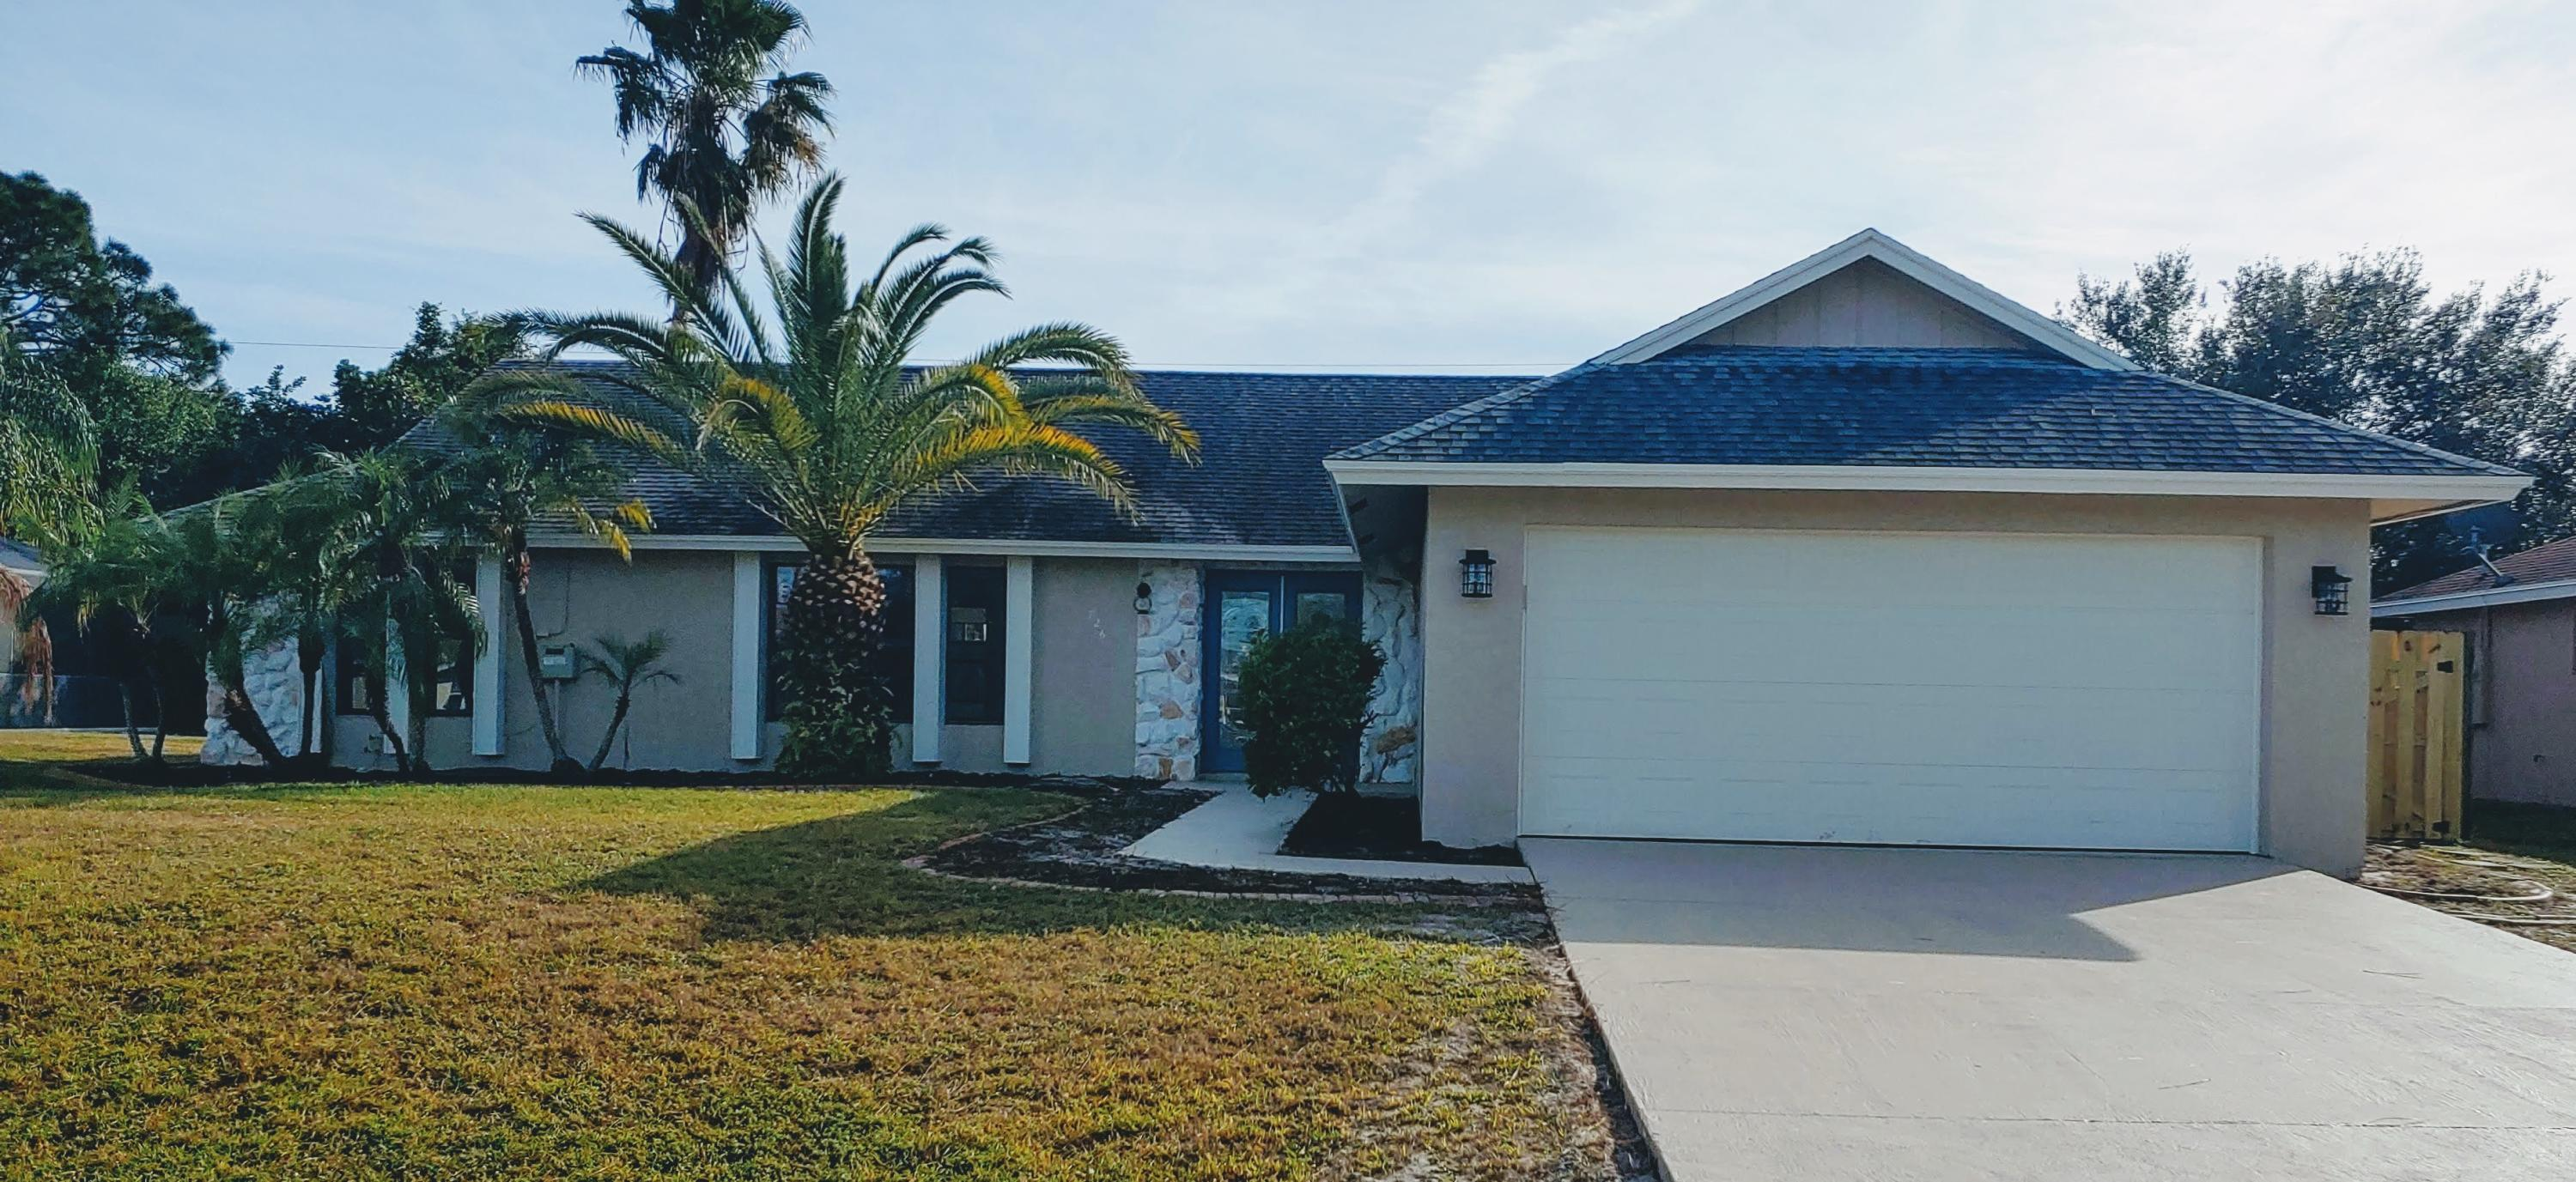 Home for sale in PORT ST LUCIE SECTION 6 Port Saint Lucie Florida